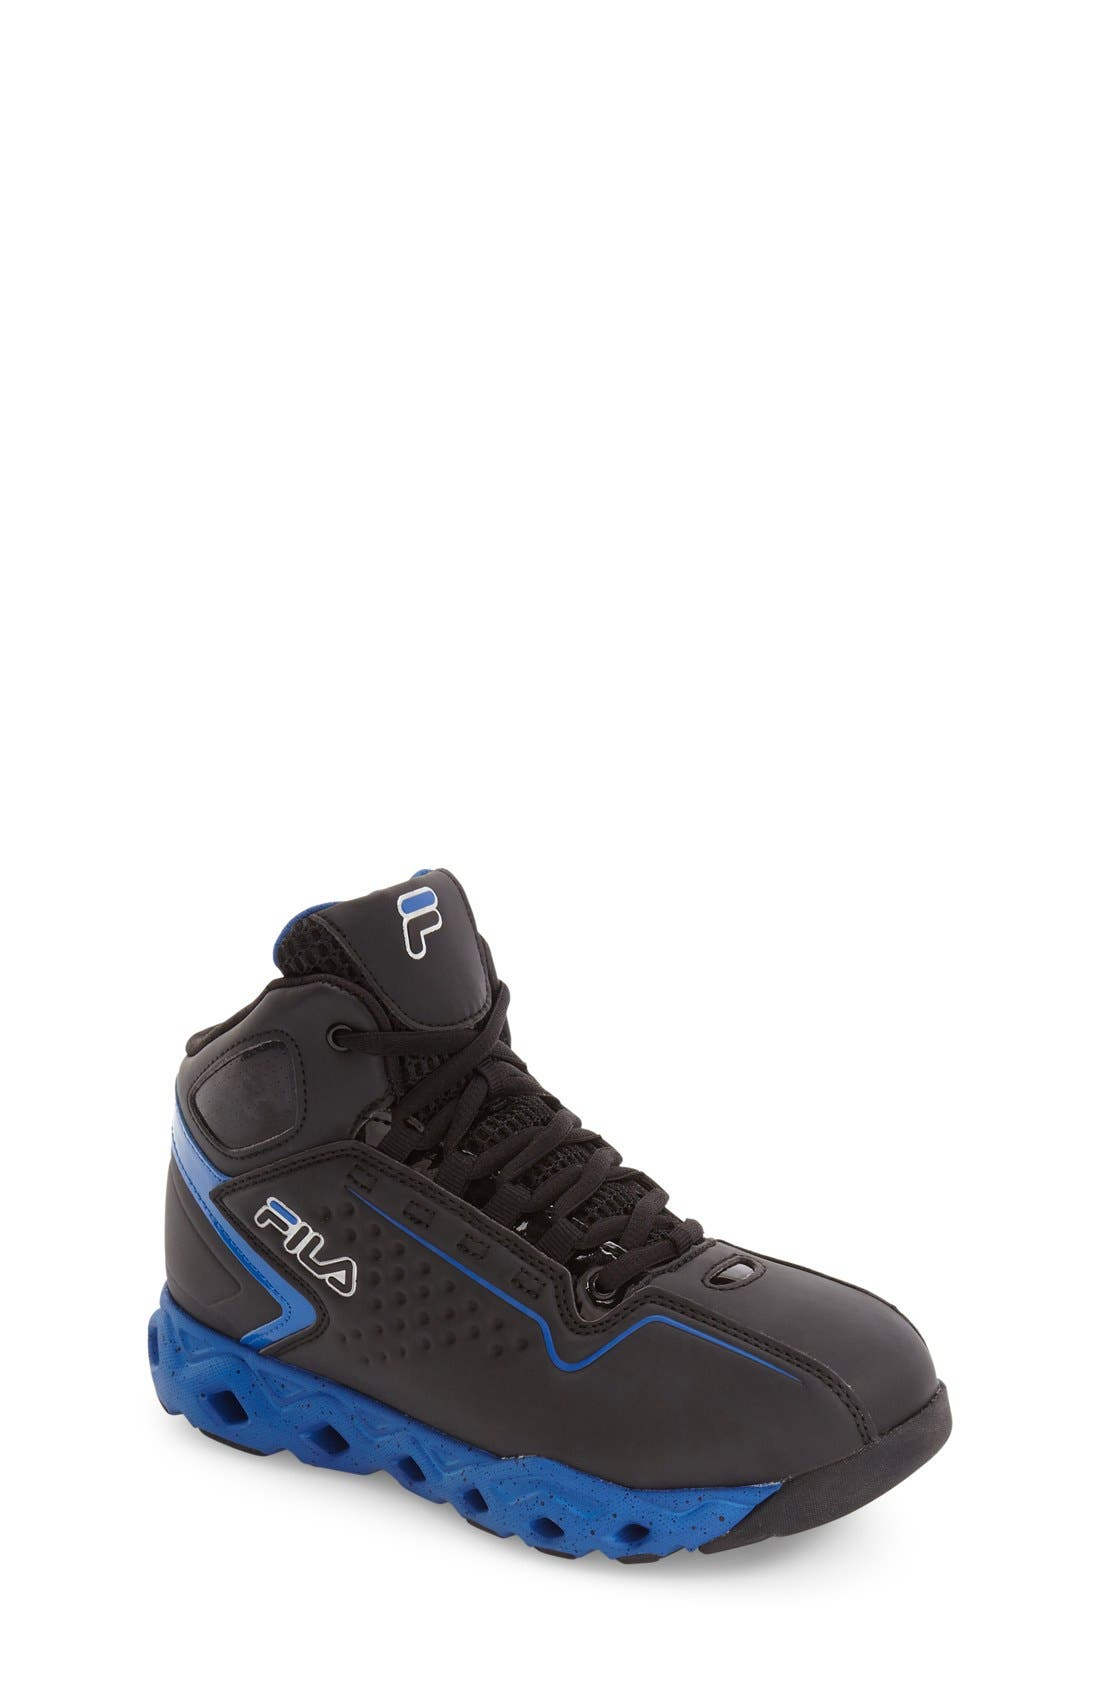 Big Bang High Top Sneaker,                         Main,                         color, Black/ Prince Blue